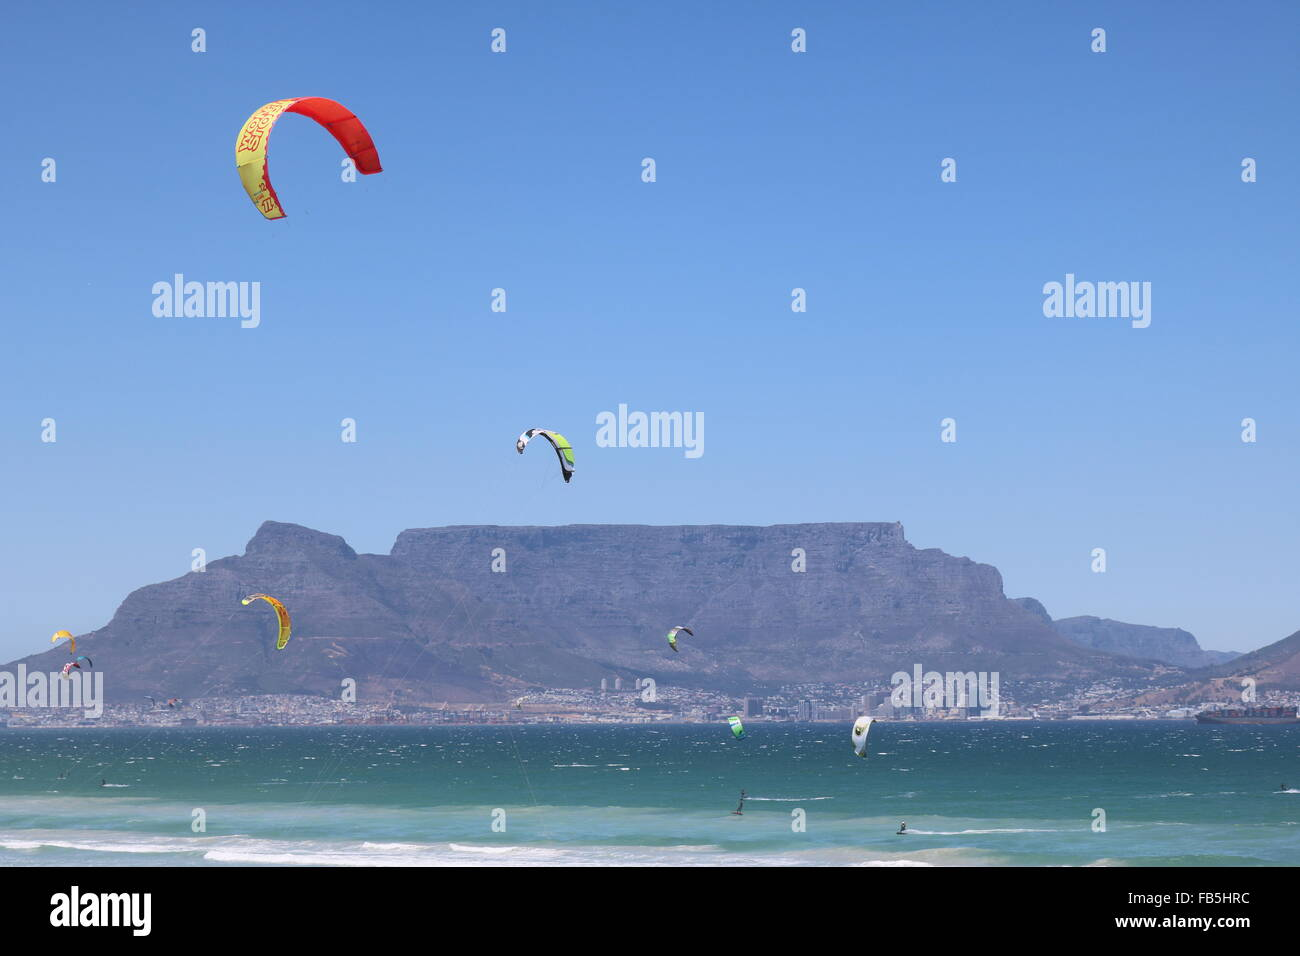 Kitesurfers at Bloubergstrand, Cape Town with Table Mountain in the background - Stock Image